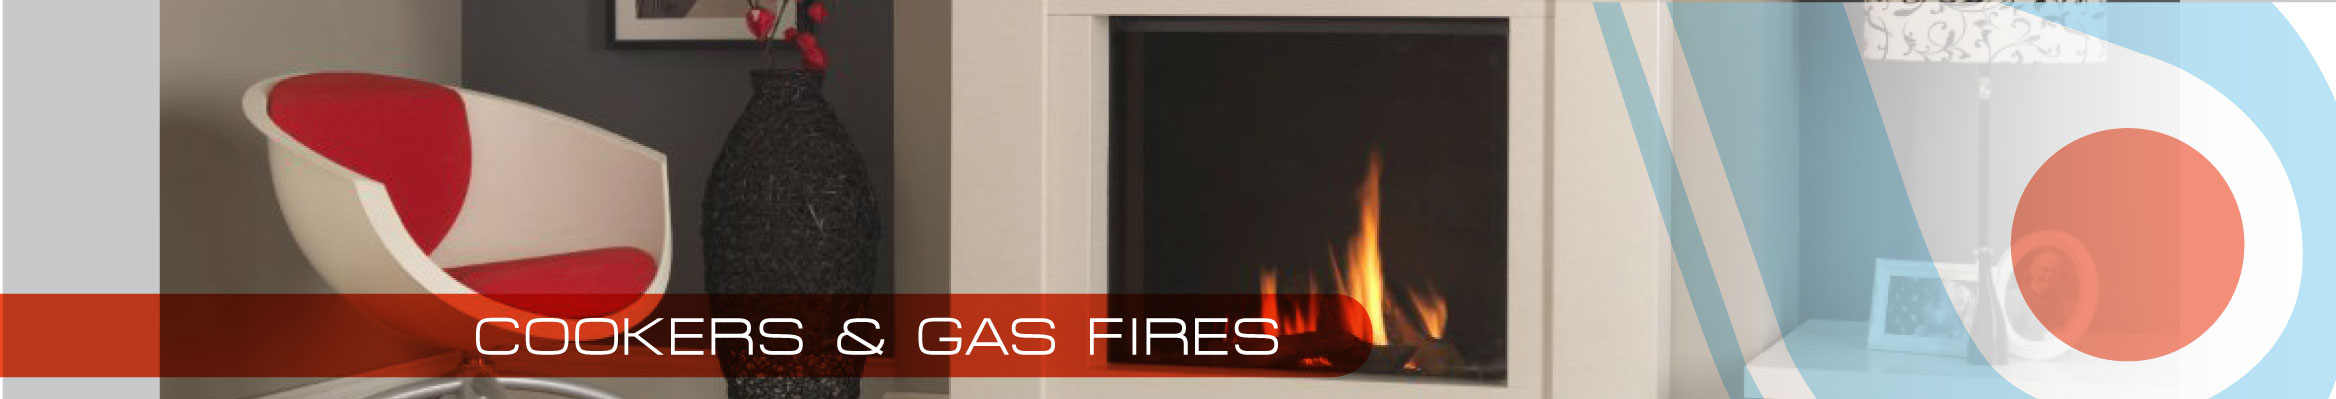 Cookers & Gas Fires Reading